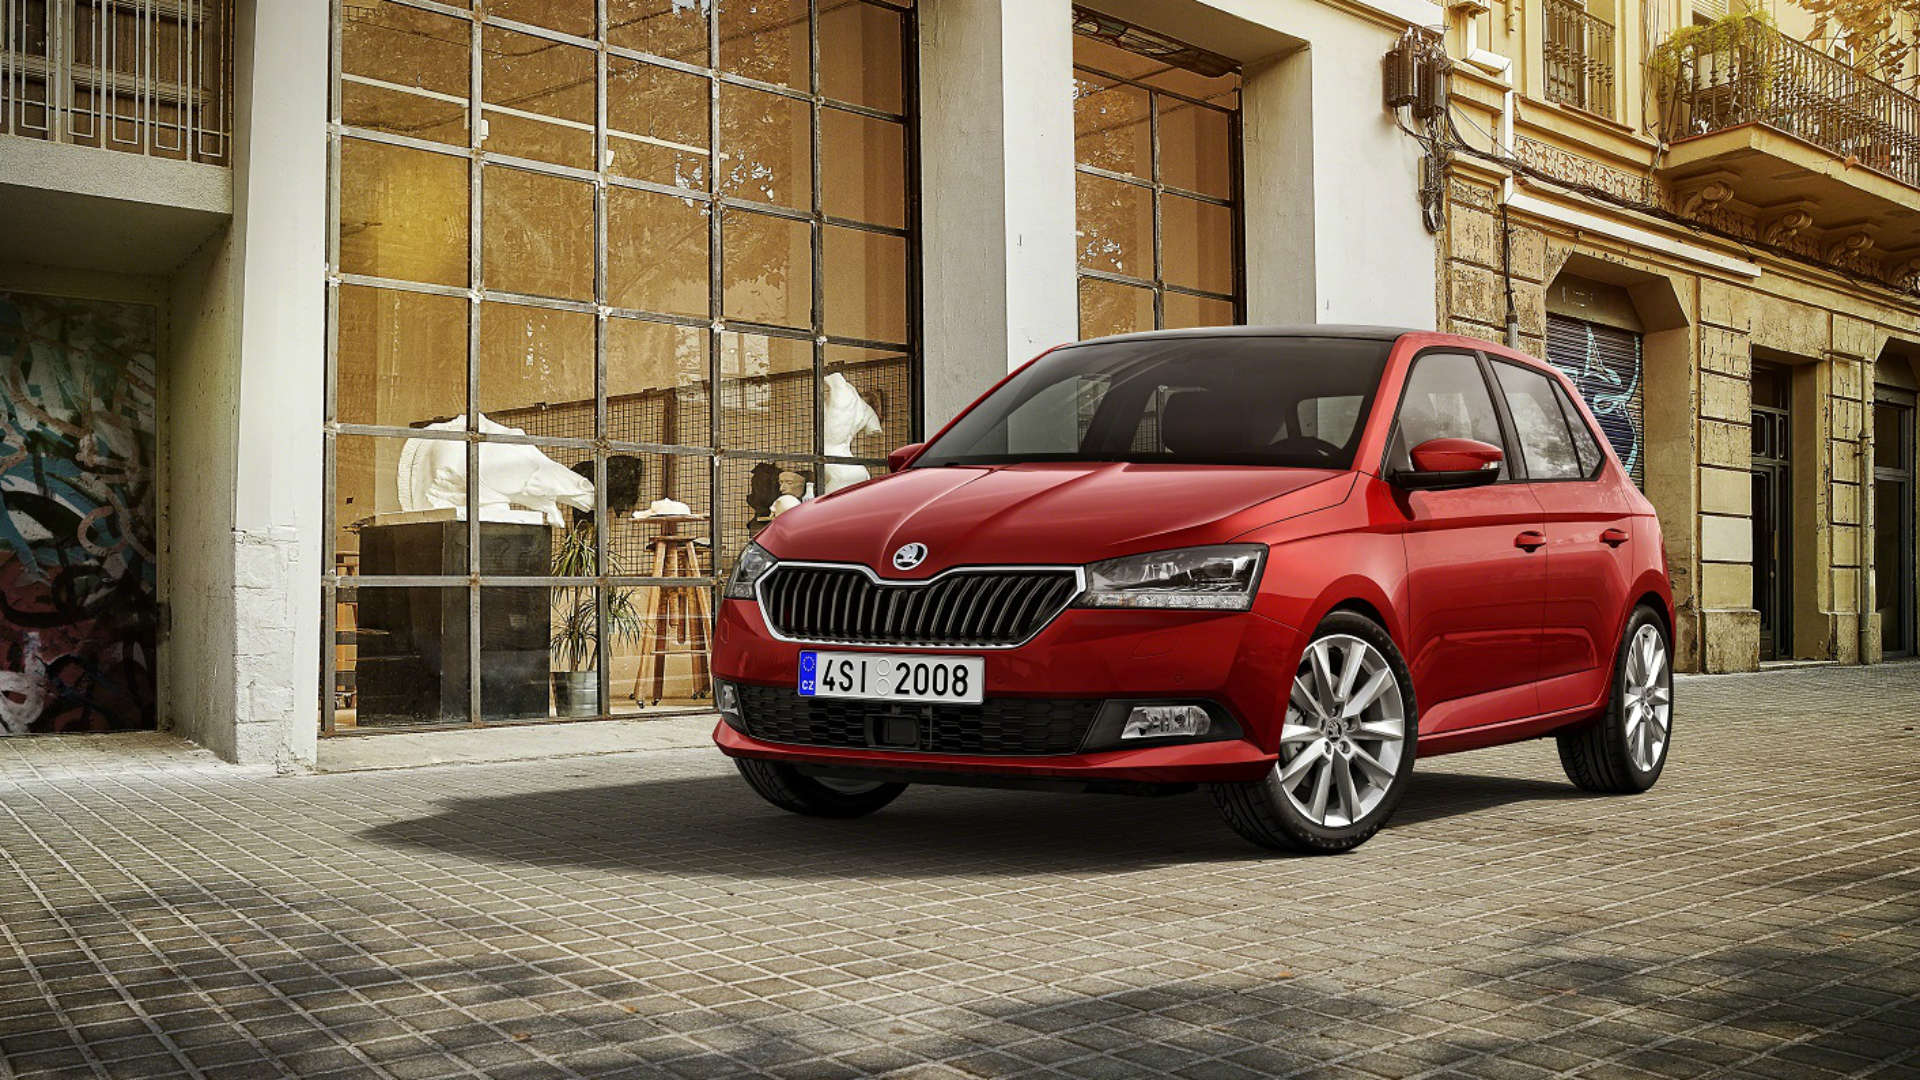 The 10 cheapest cars to insure in 2019 | Motoring Research